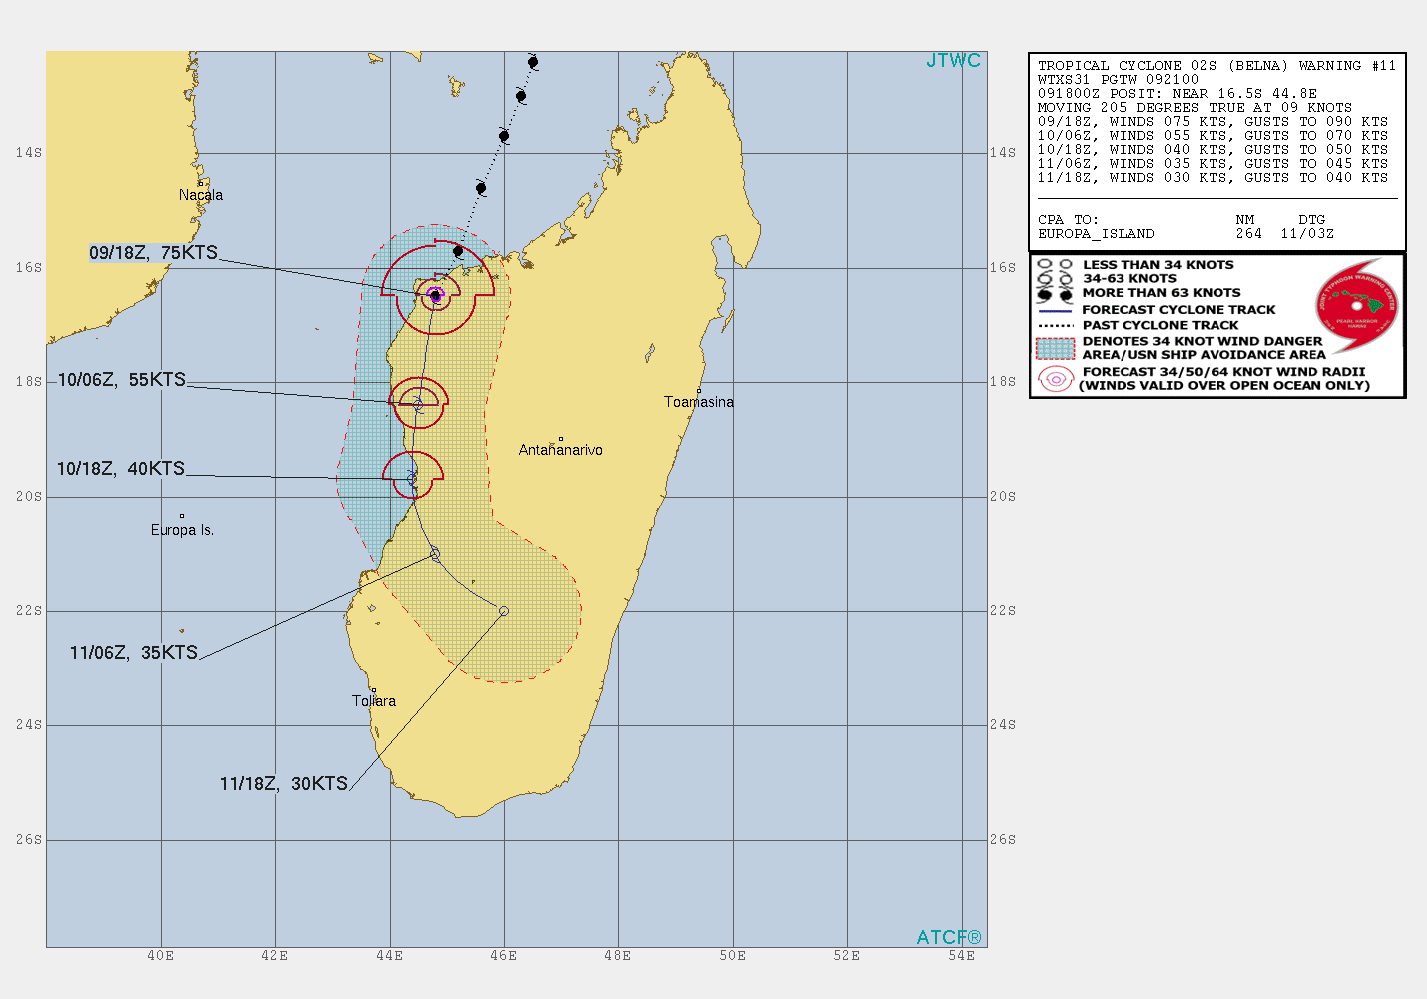 photo:JTWC;desc:Tropical Cyclone Belna forecast cone (Warning #11);